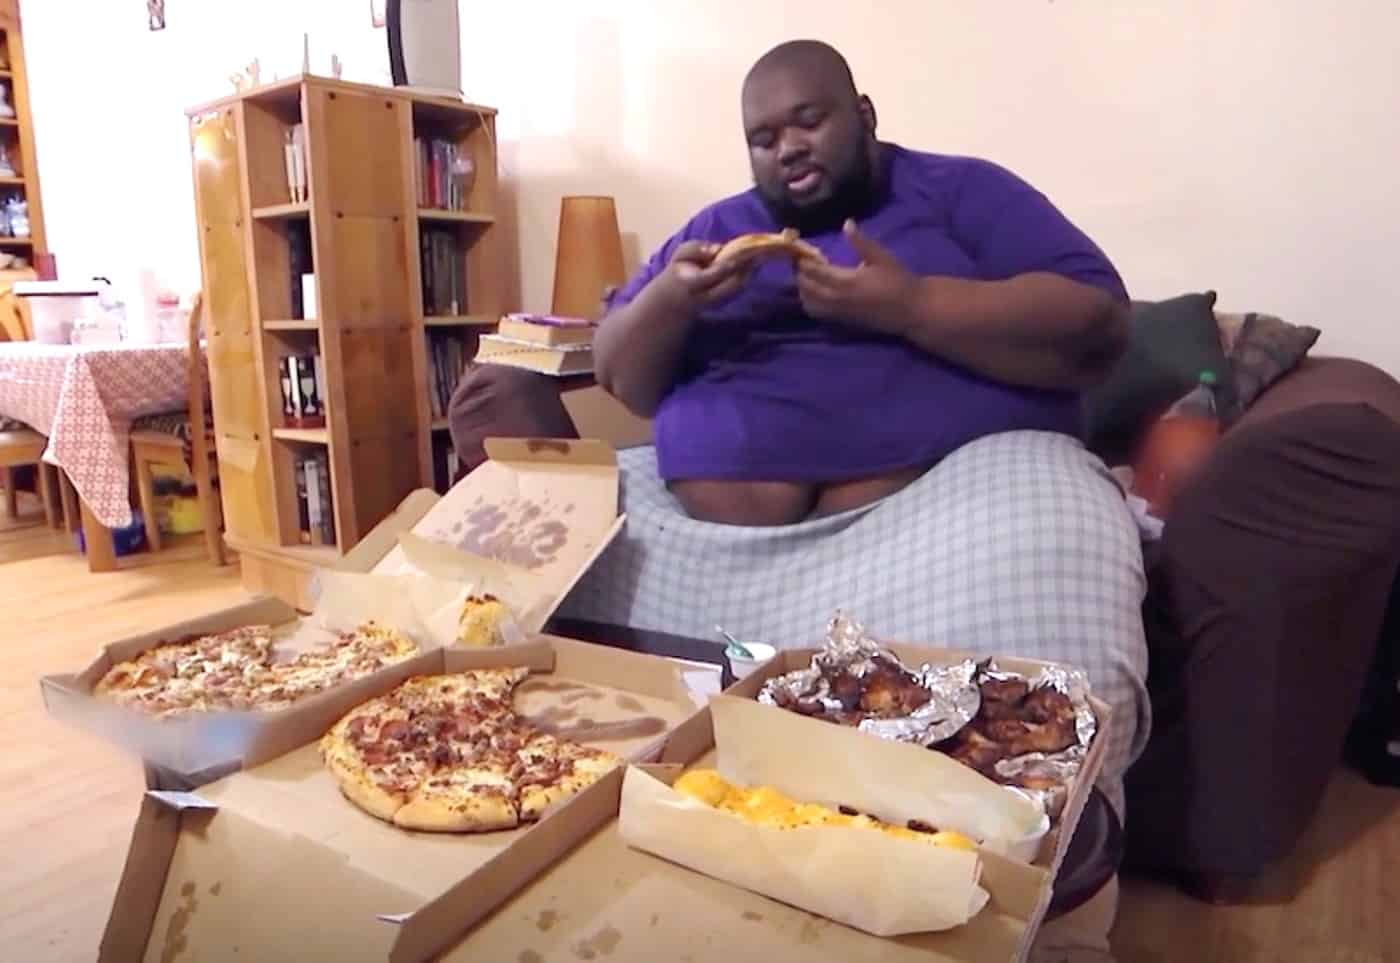 PHOTOS: See My 600-Lb Life Star Thederick's Weight Loss Update, Has He Kicked His Addiction to Ice Cream and Pizza and Slimmed Down After Filming Season Nine?